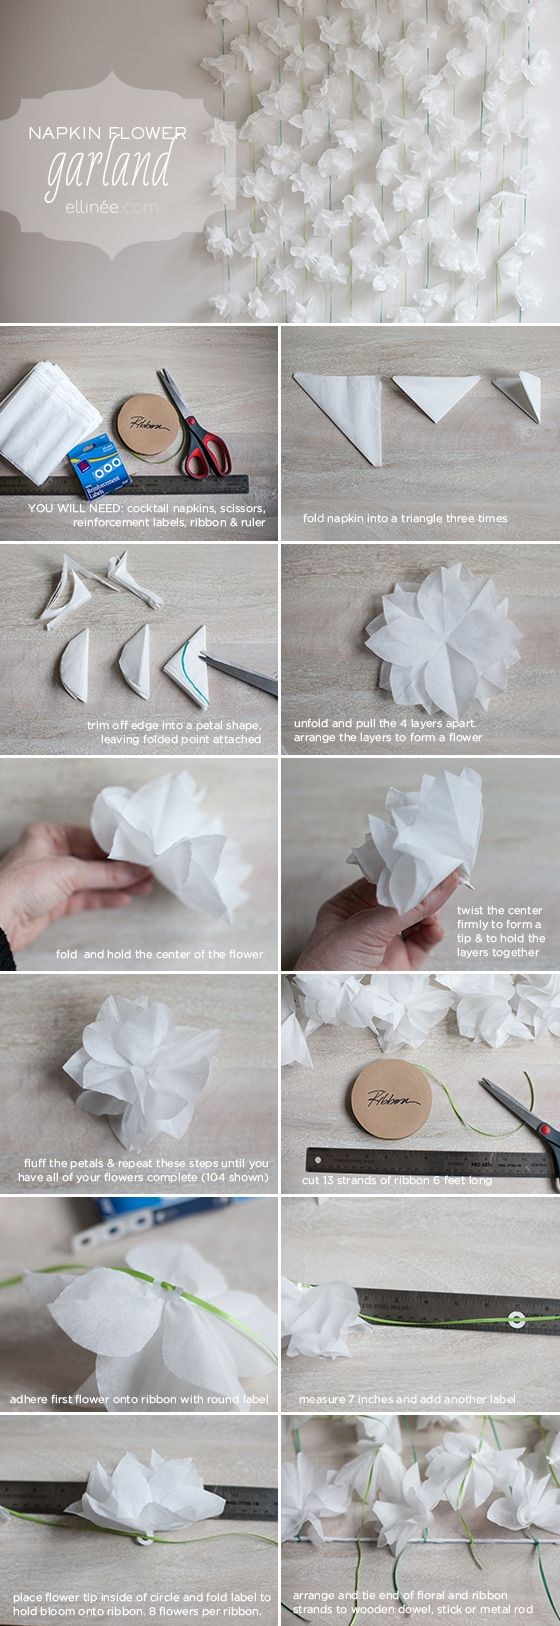 DIY Paper Napkin Flower Garland   Tutorial